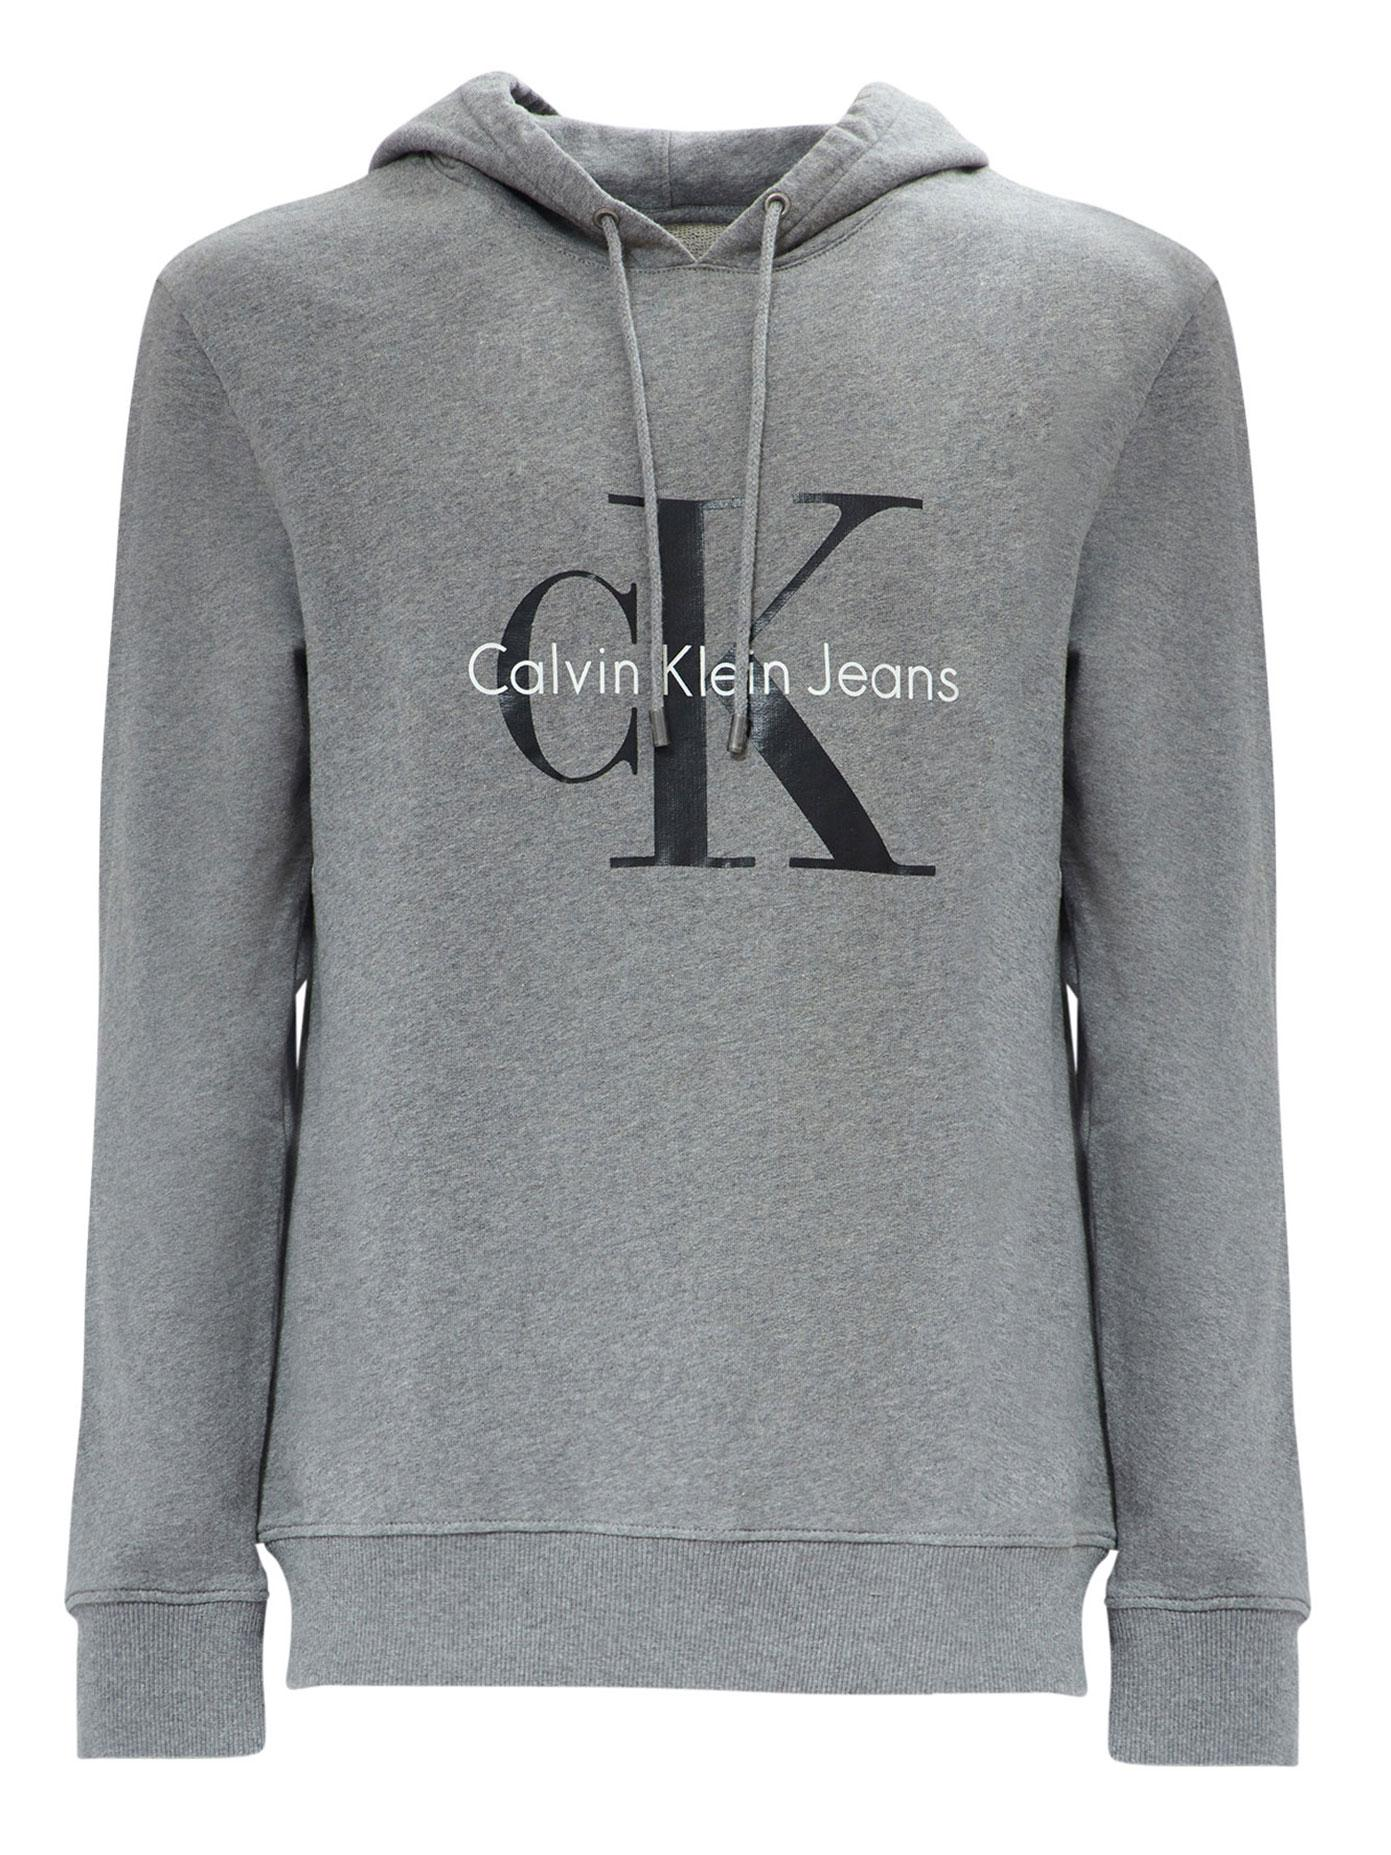 calvin klein jeans logo cotton hoodie in gray for men lyst. Black Bedroom Furniture Sets. Home Design Ideas